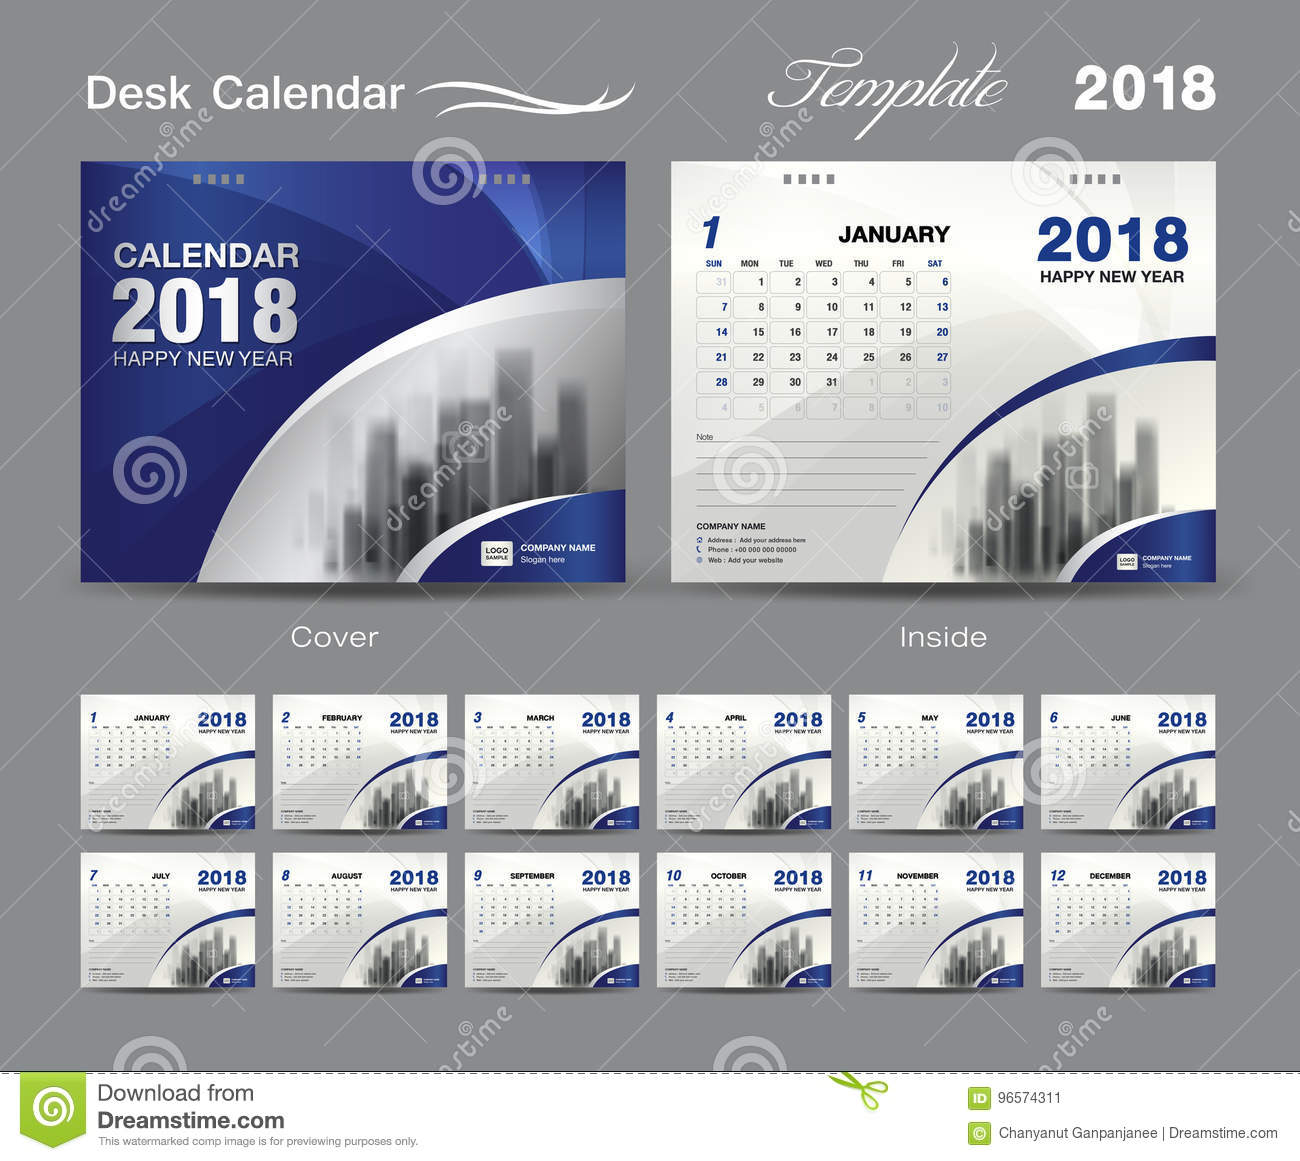 Calendar Design Layout : Desk calendar template design blue cover layout